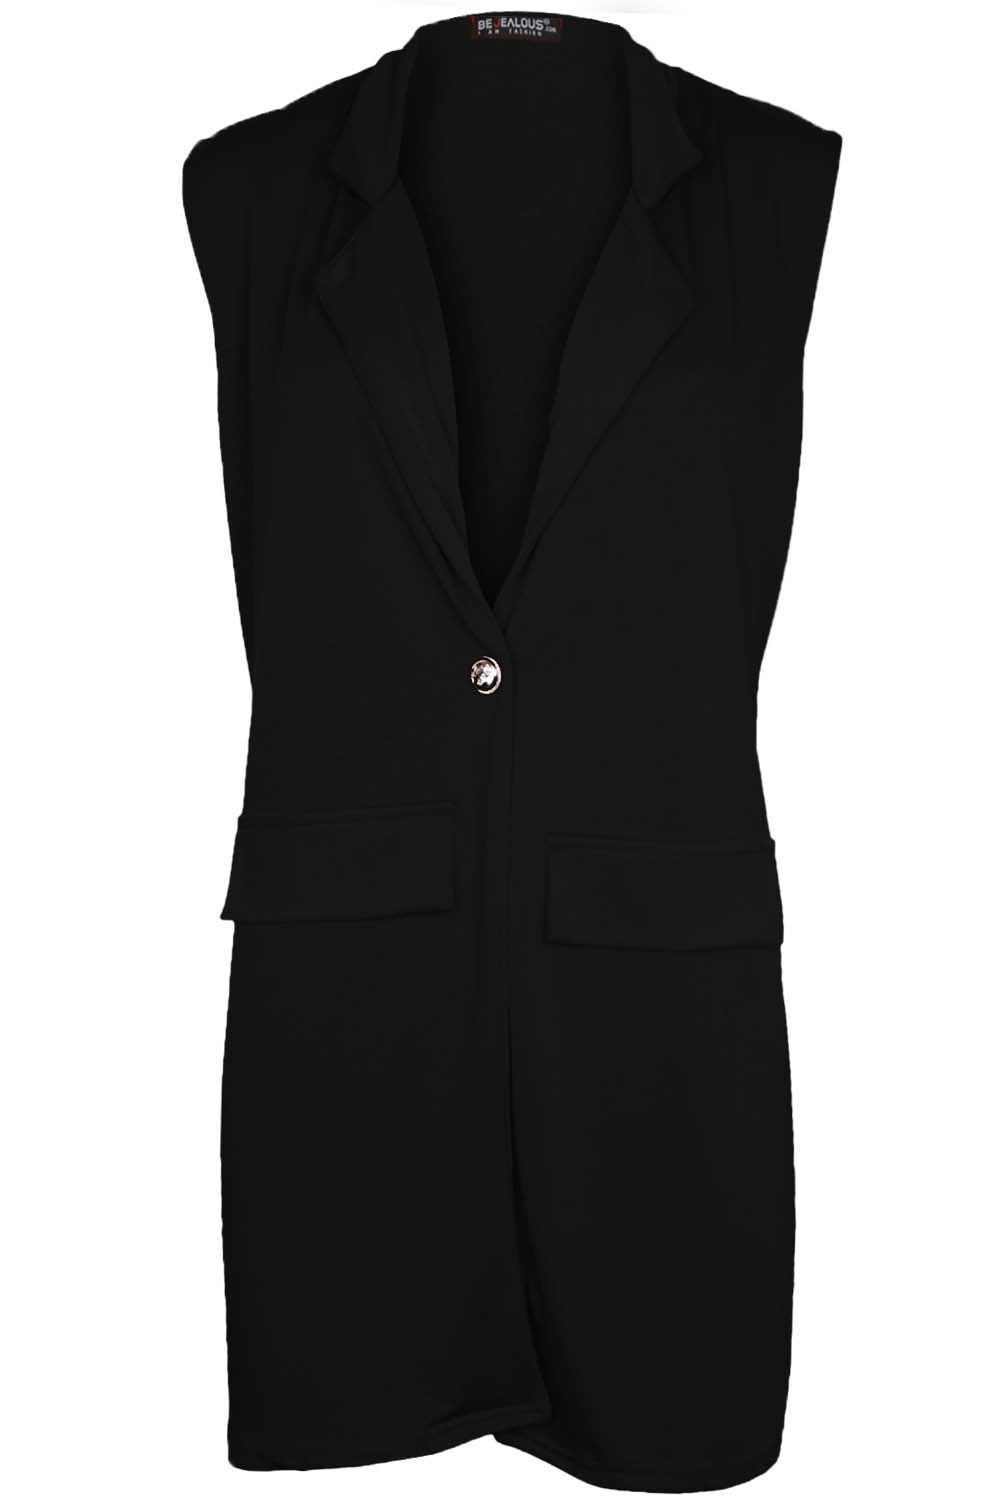 Women-Ladies-Sleeveless-Long-Duster-Coat-Collar-Waistcoat-Smart-Blazer-Plus-Size thumbnail 16